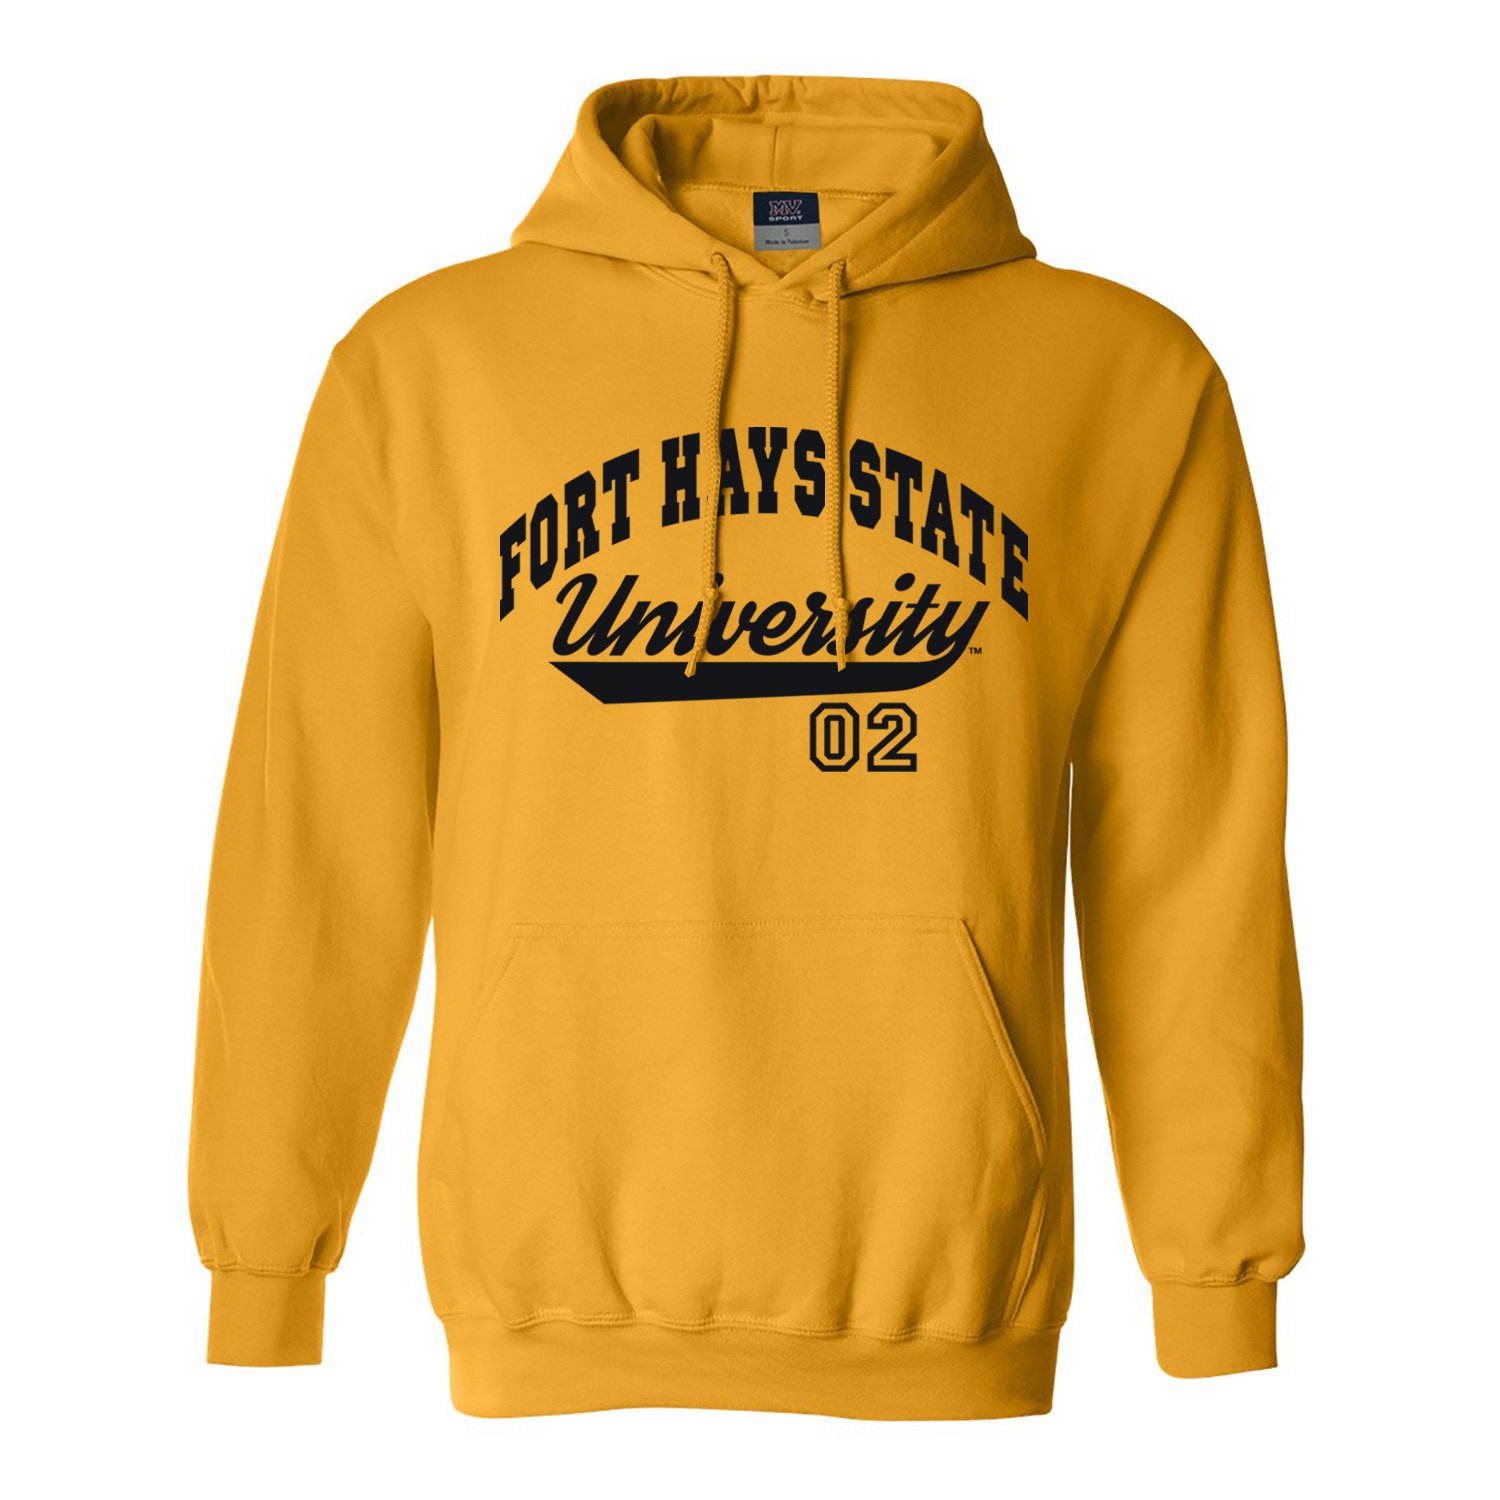 Image for the Hoodie Sweatshirt in White or Gold FHSU 02 MV Sport product